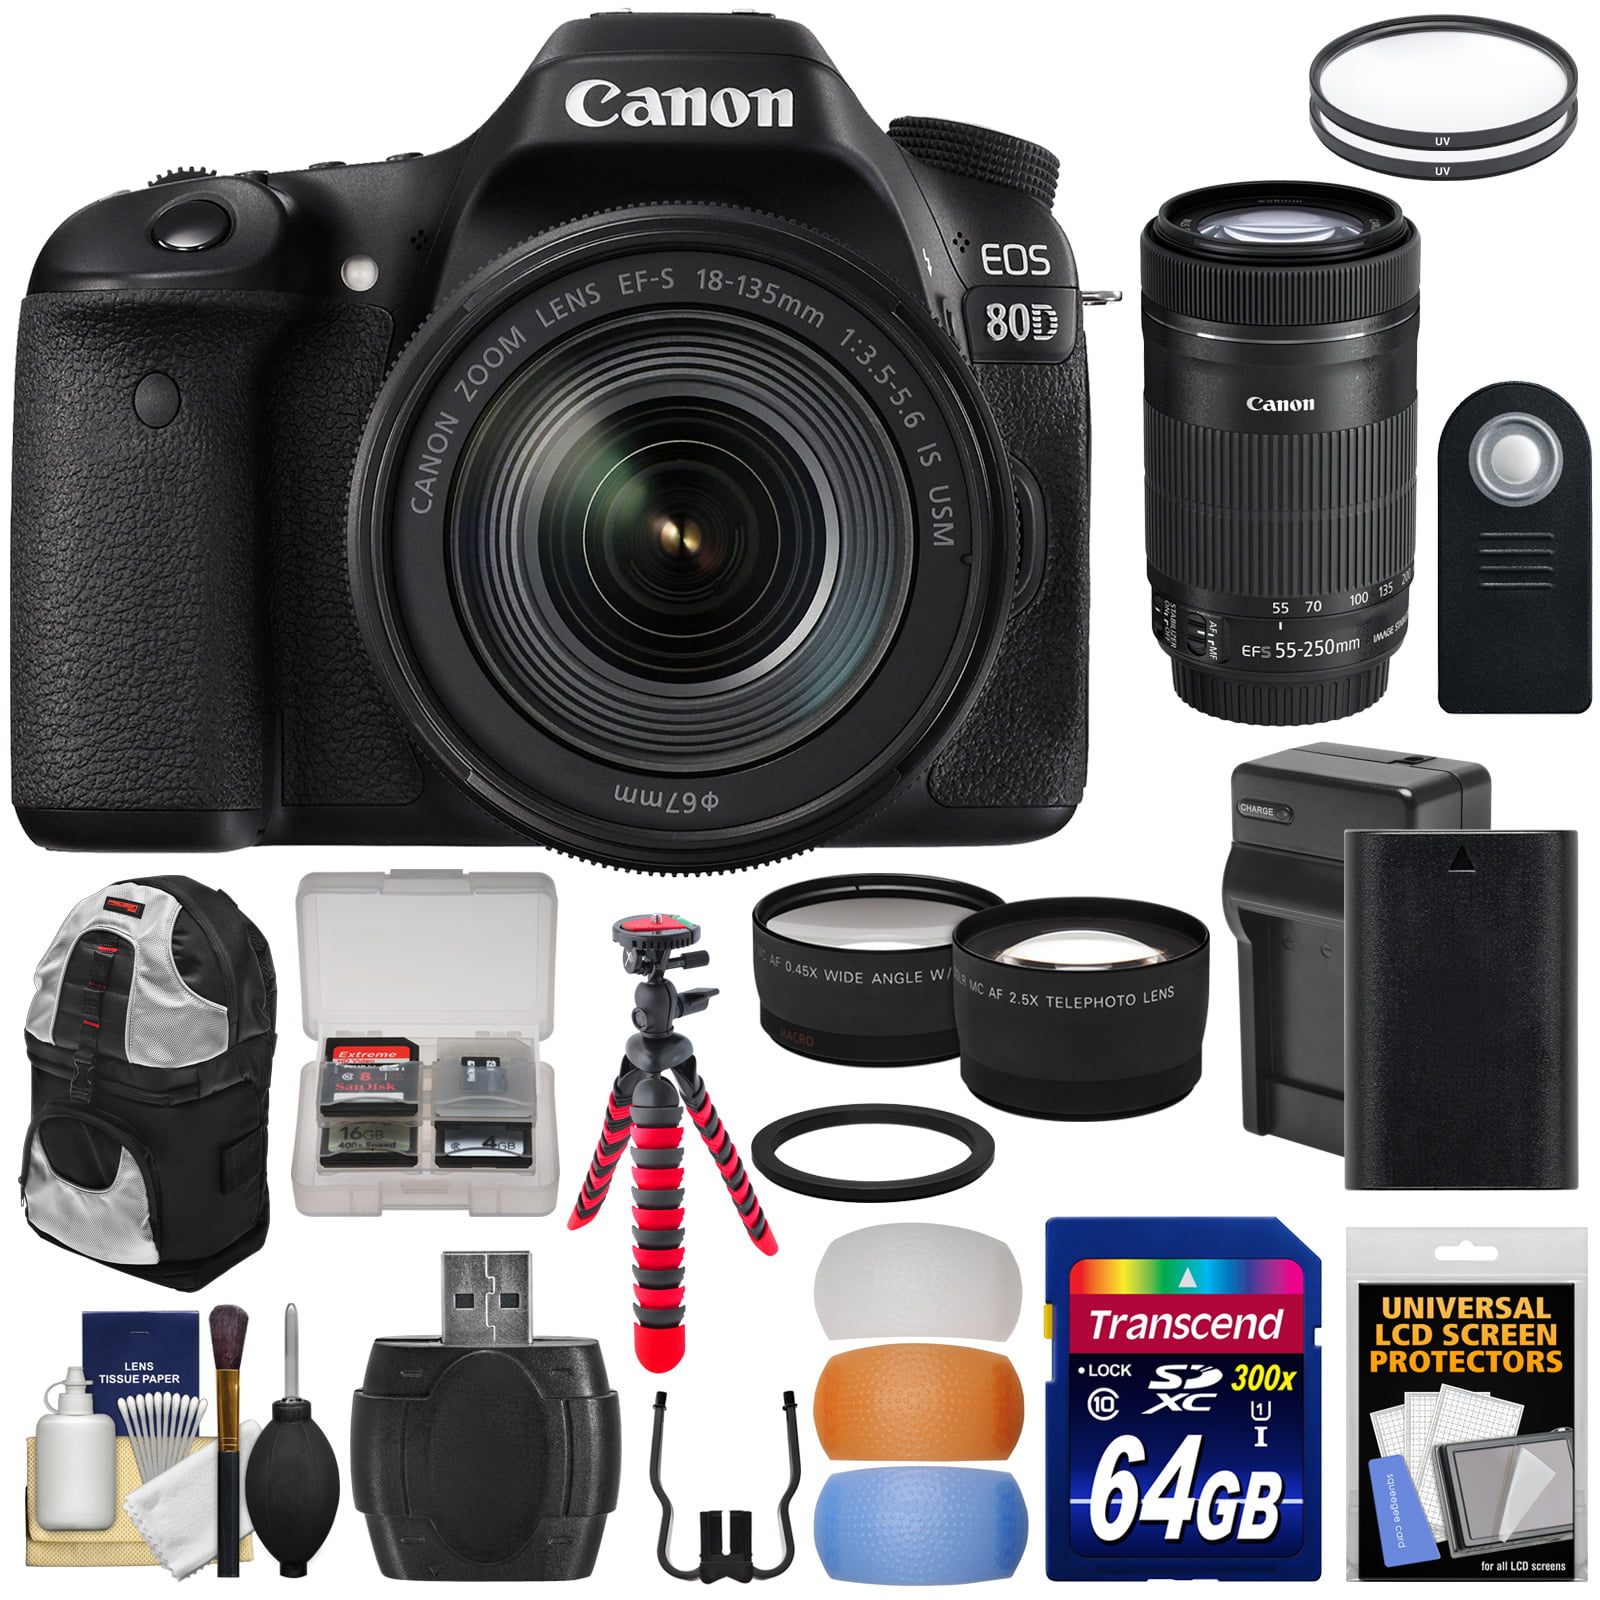 Canon EOS 80D Wi-Fi Digital SLR Camera & 18-135mm IS USM with 55-250mm IS STM Lens + 64GB Card + Battery & Charger +... by Canon